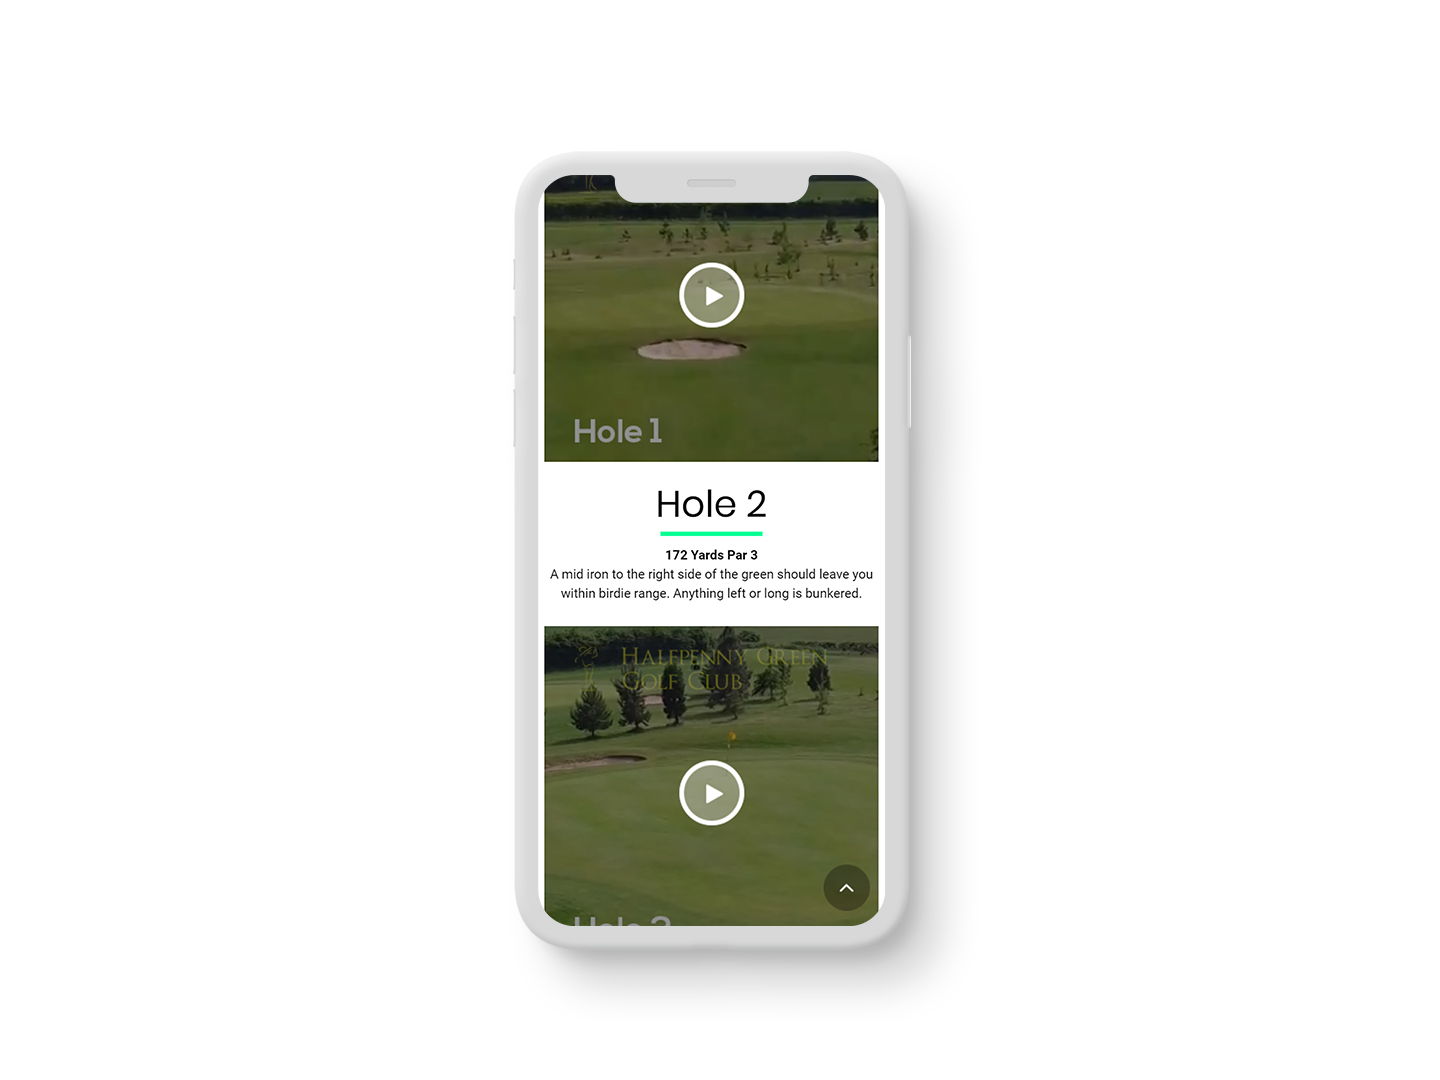 Halfpenny Green Golf Club Video Website Development Digital Social Creative Direction